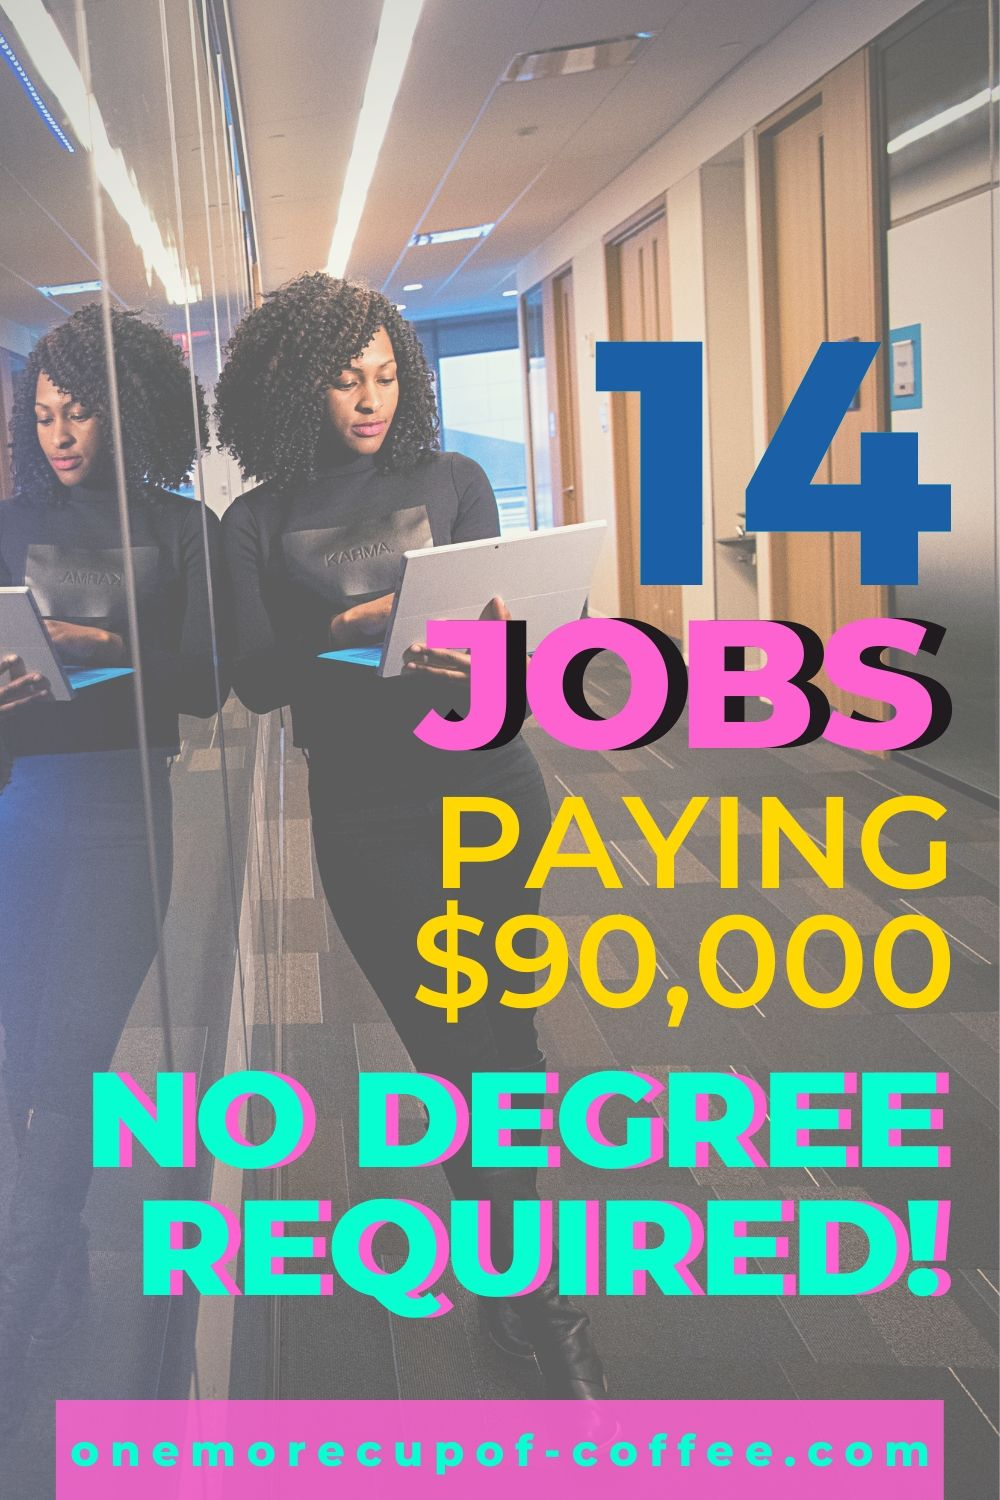 Woman working in cybersecurity representing jobs paying $90,000 and no degree!